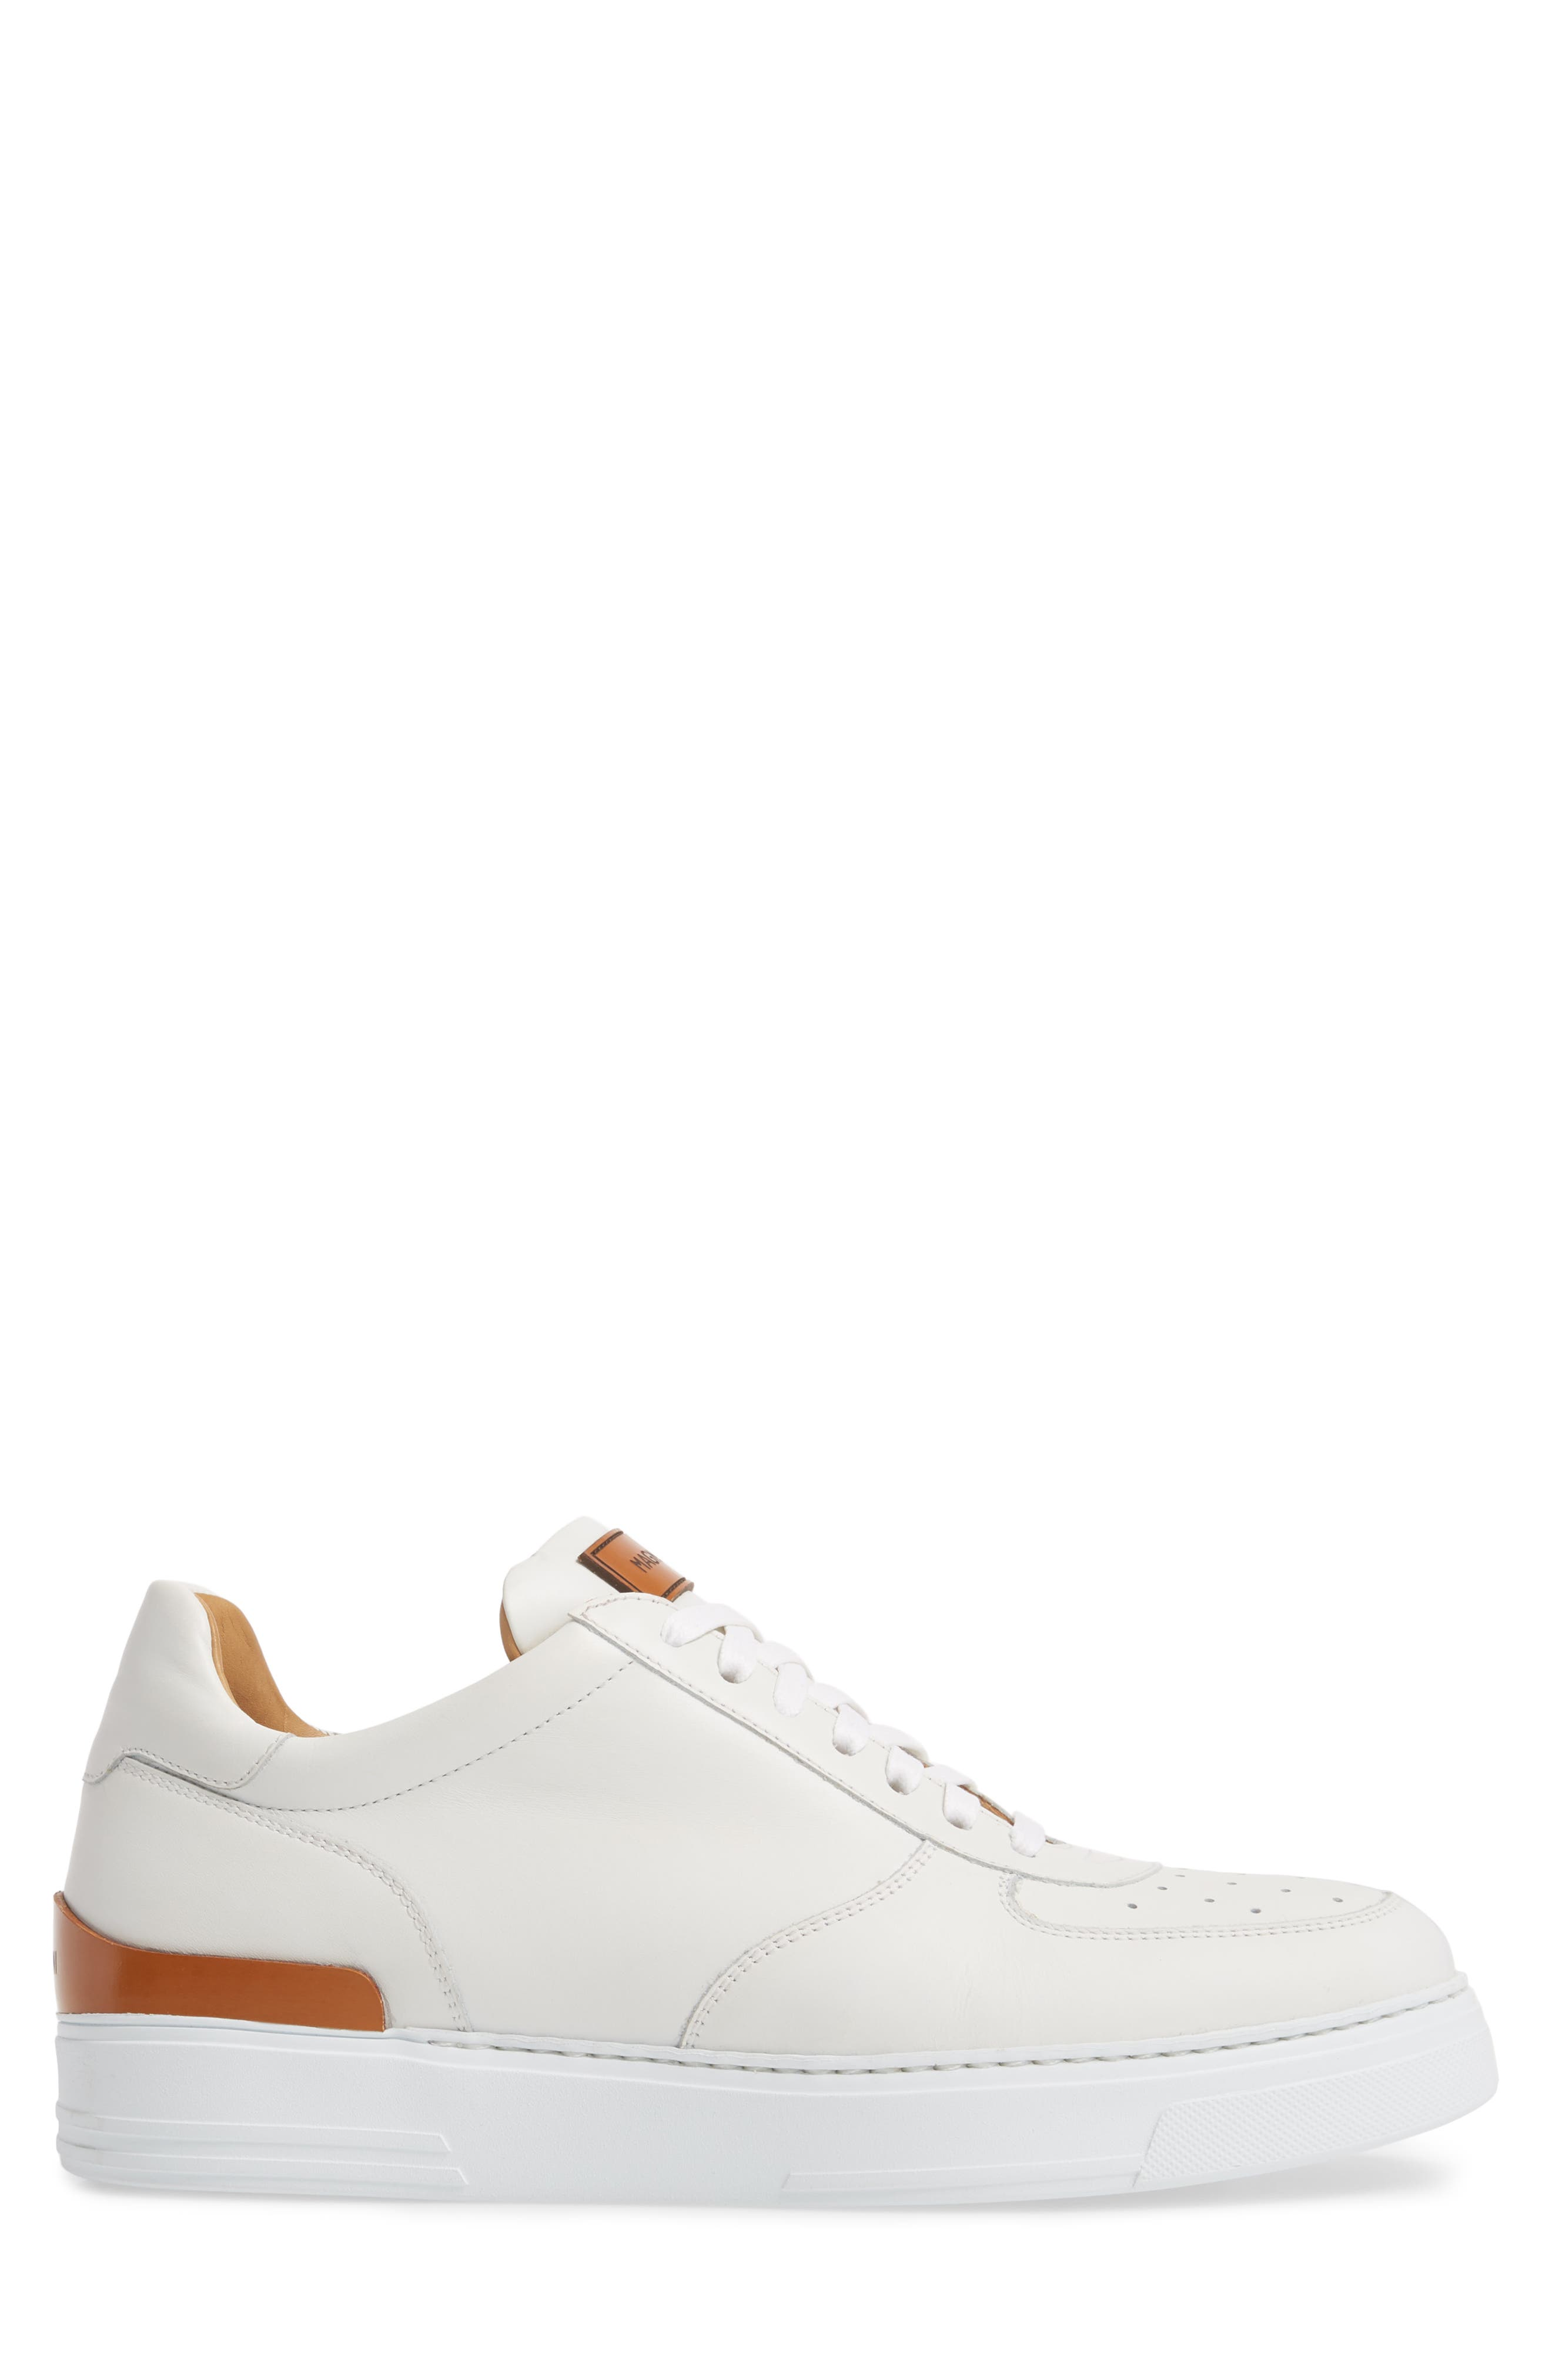 Vada Lo Lace Up Sneaker,                             Alternate thumbnail 3, color,                             WHITE LEATHER